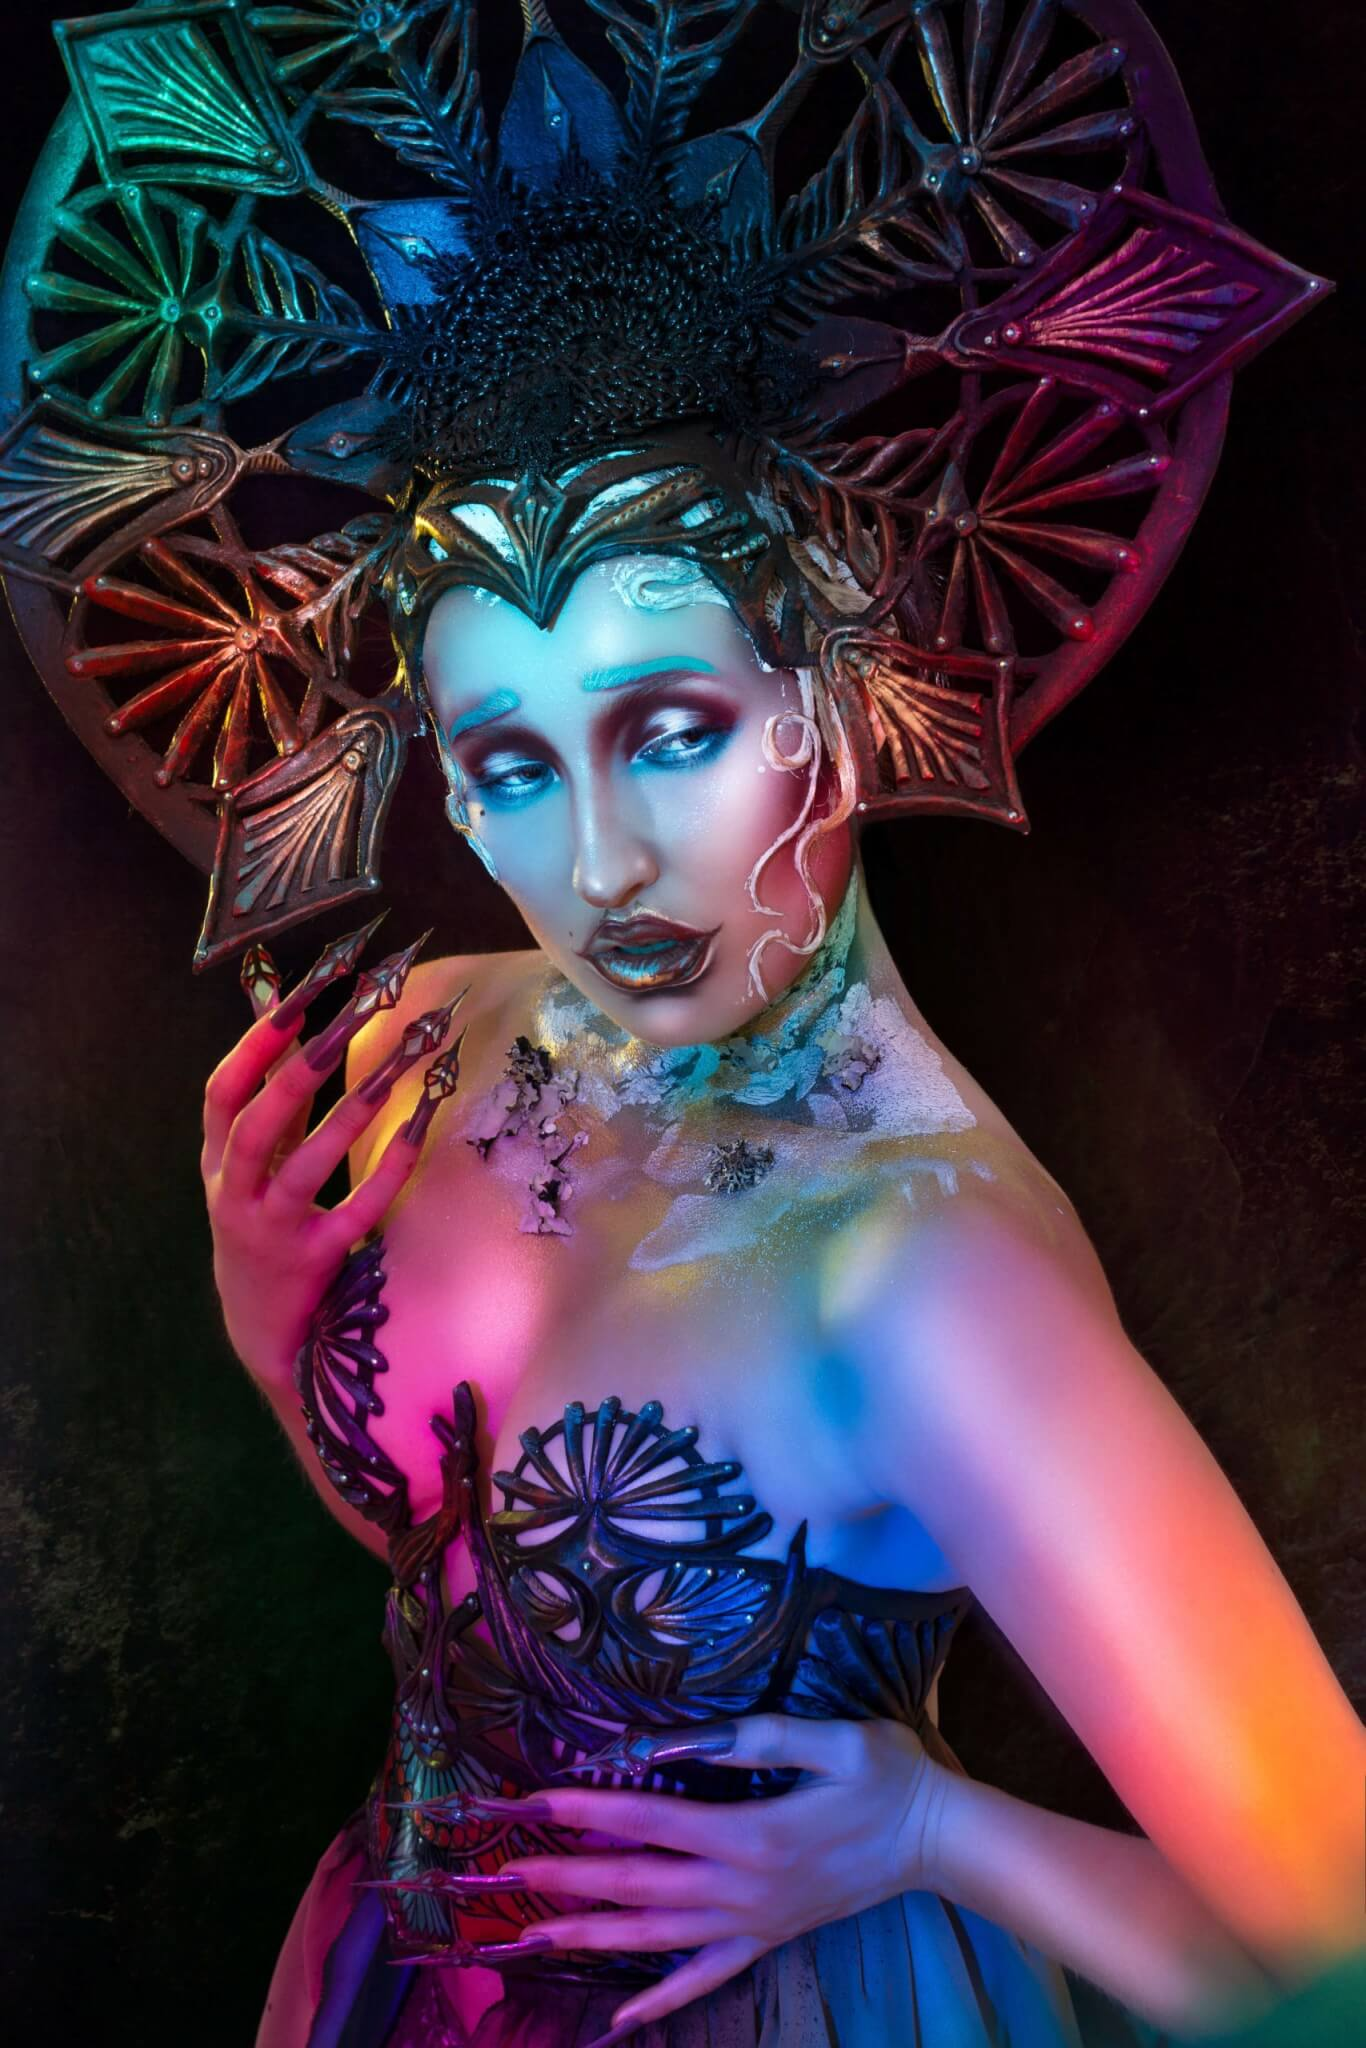 art nouveau photography by josefien hoekstra. make-up/ styling/ model: candy makeup artist